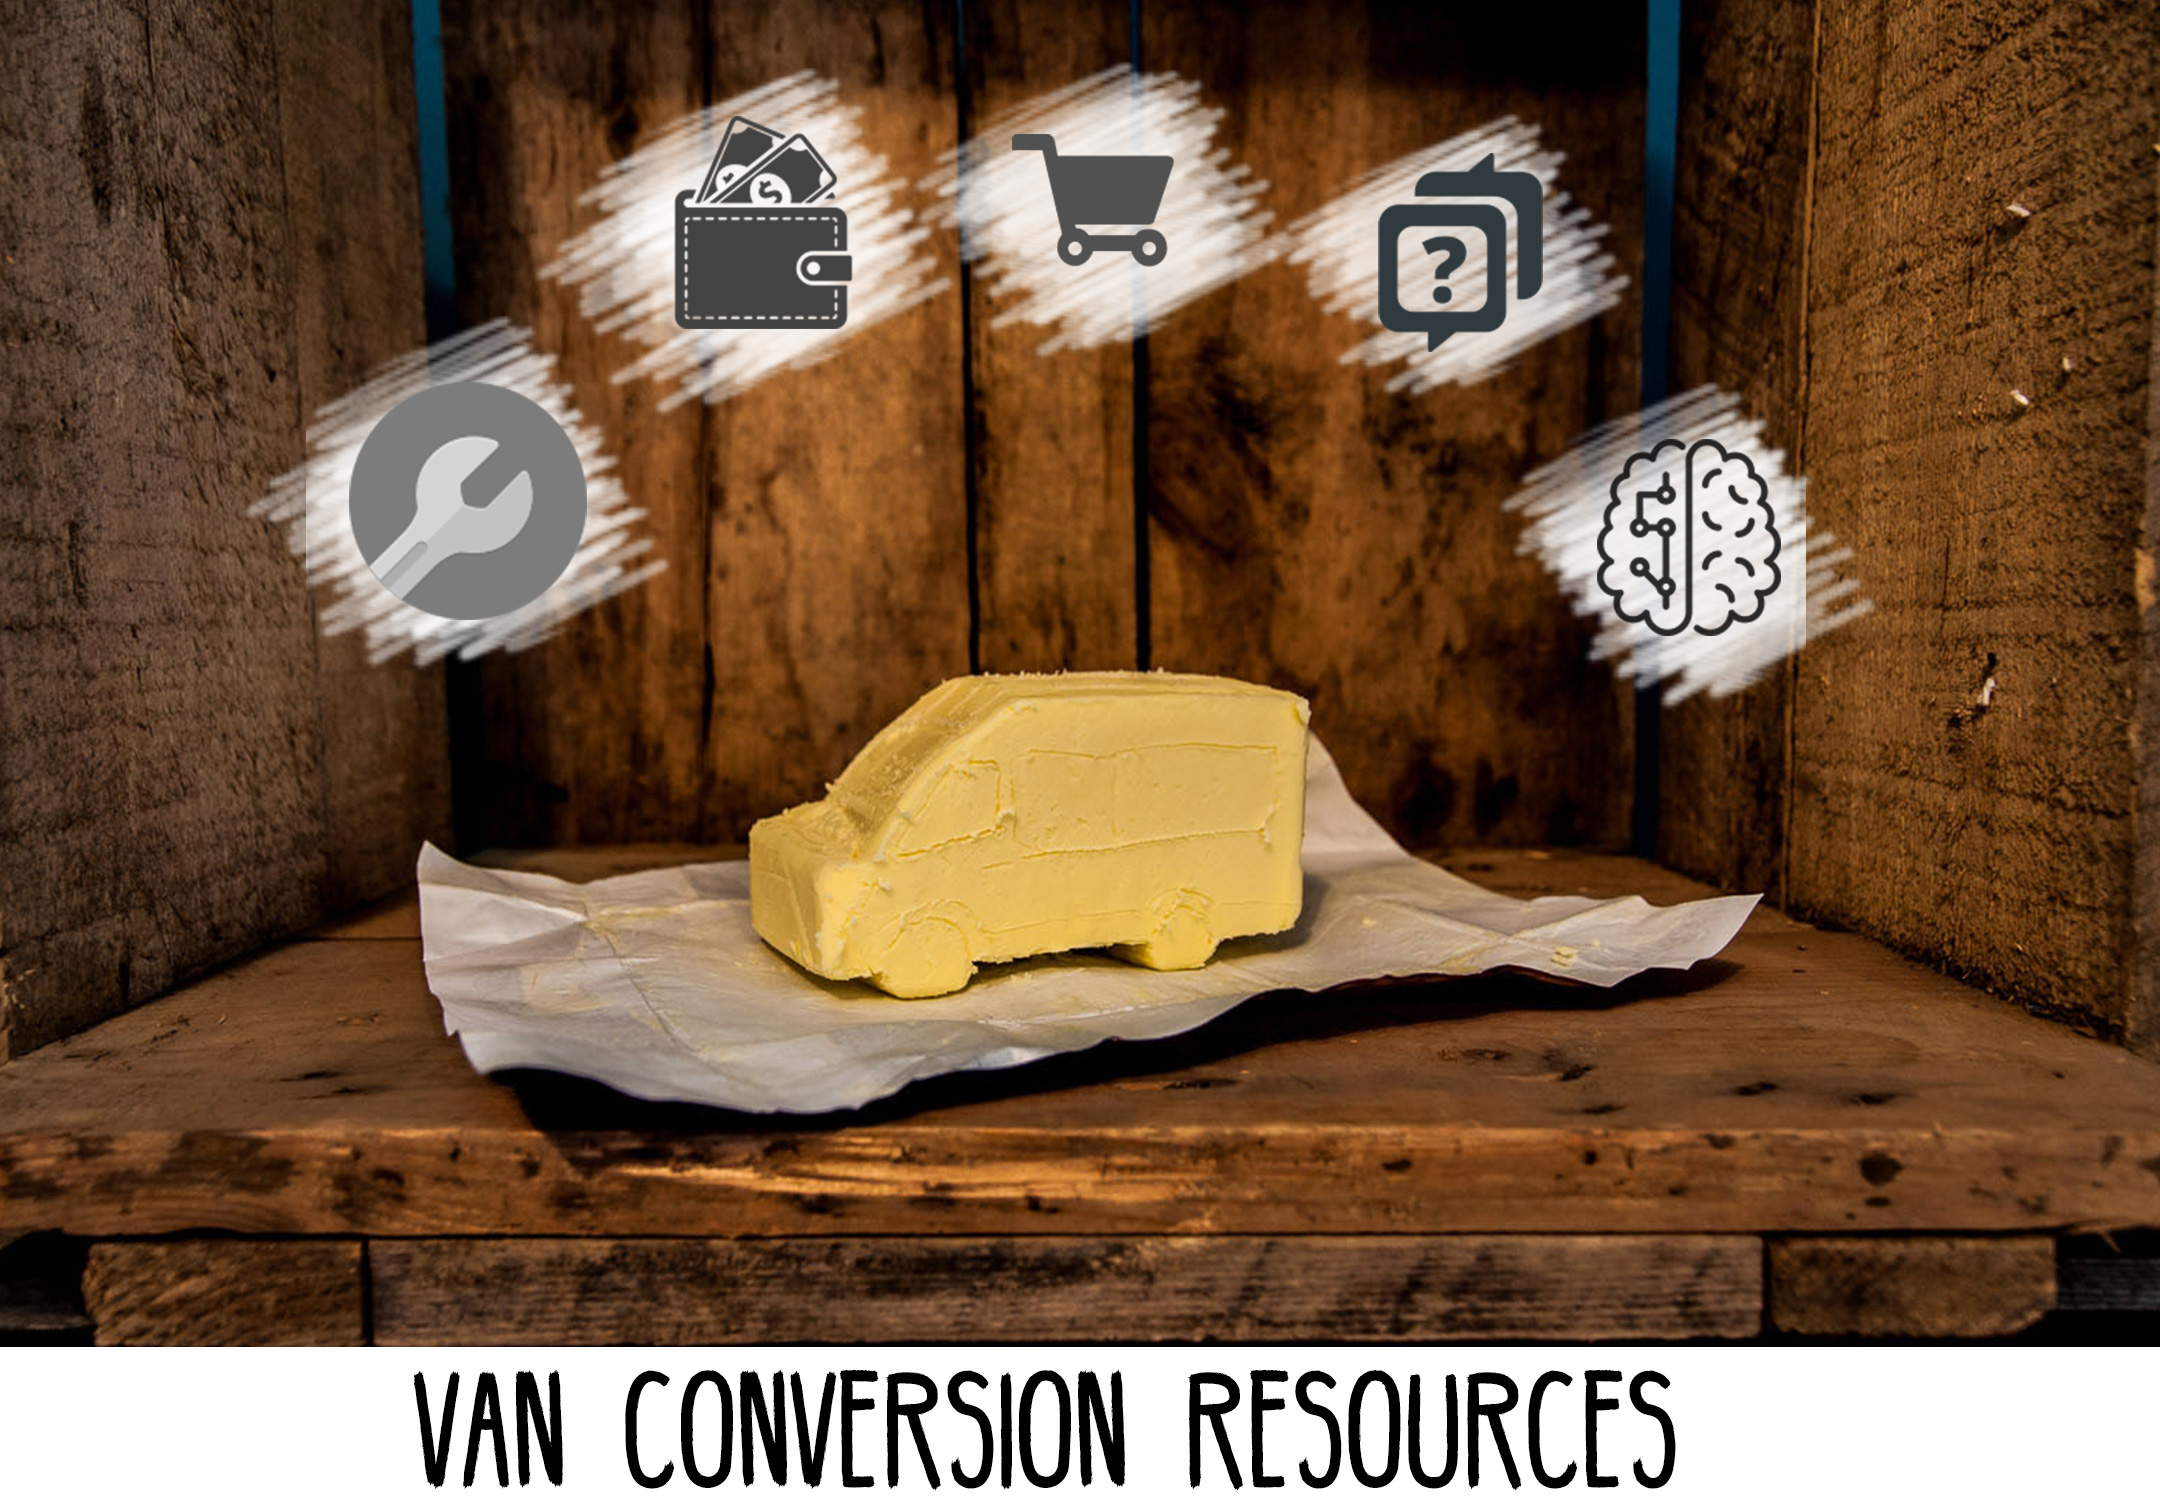 Van Conversion Resources